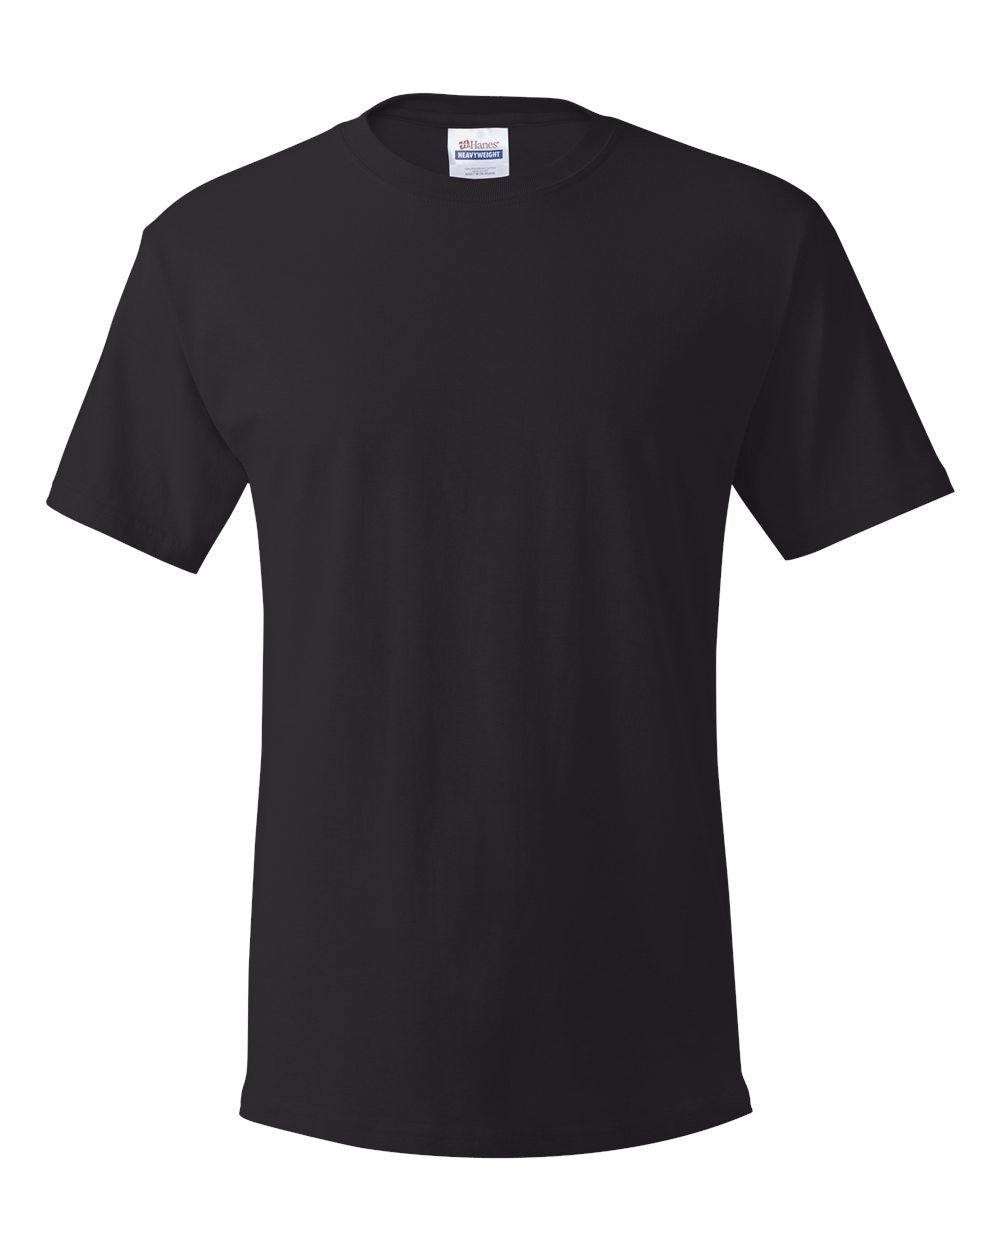 12-Pack Men's T-Shirts - Assorted Colors-Extended Sizes - Discountedrack.com